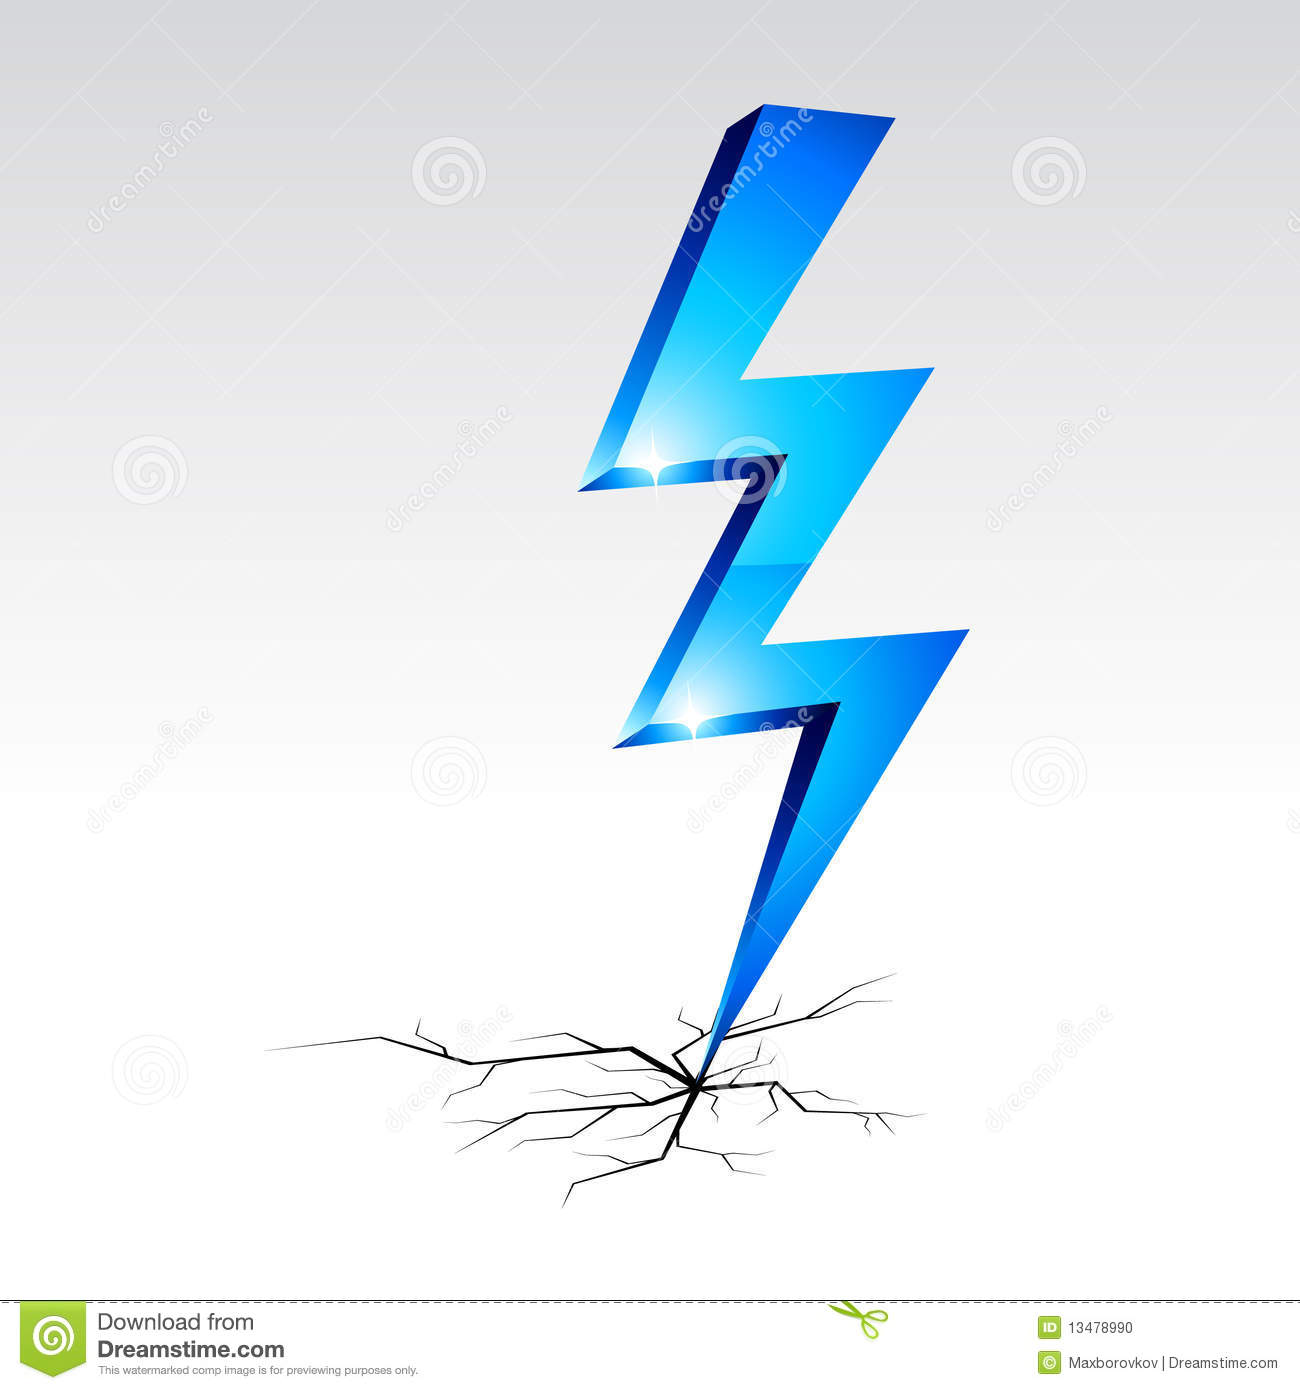 Electricity Warning Symbol. Stock Photo - Image: 13478990